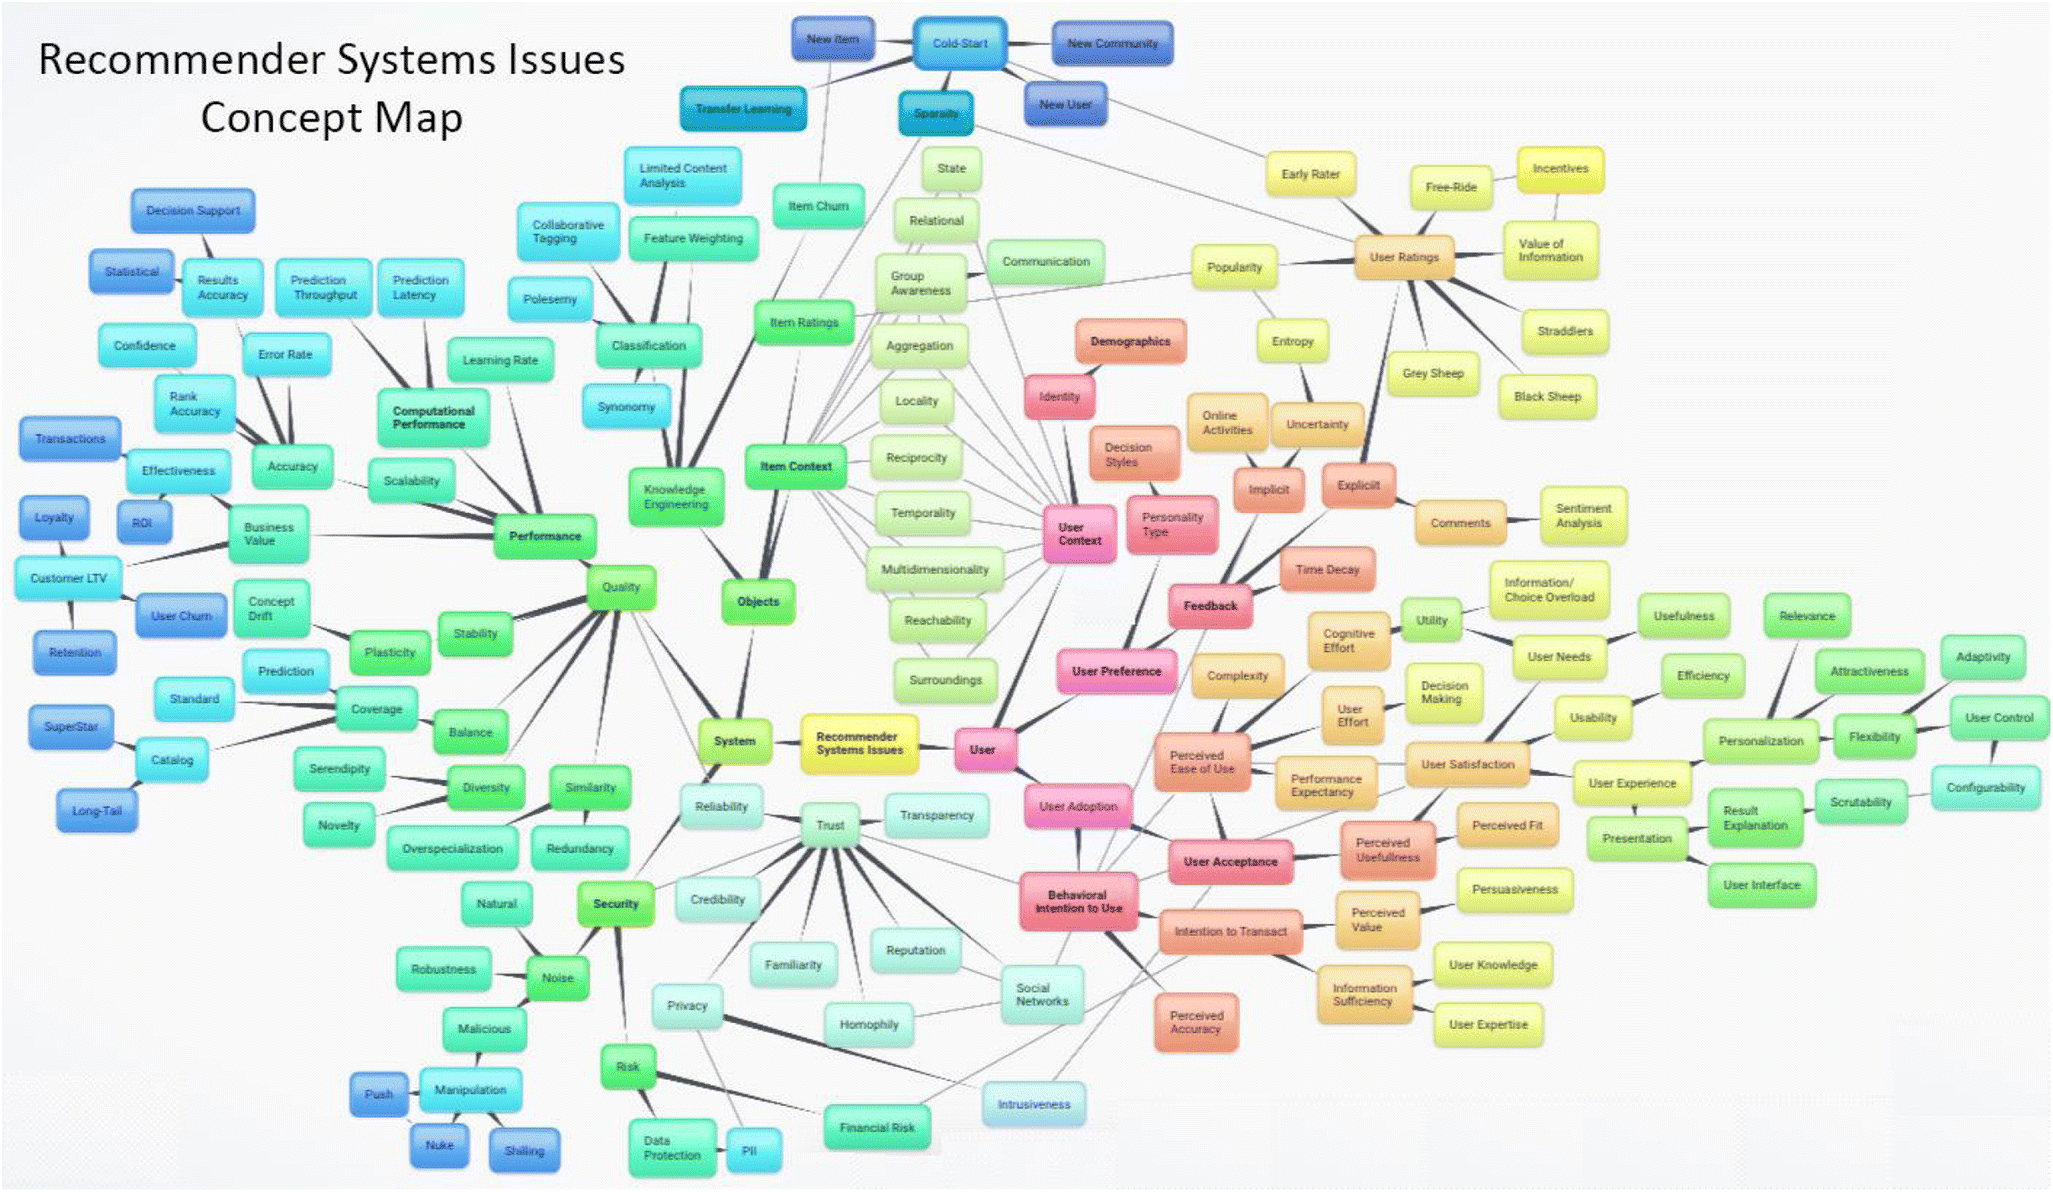 RecSys Issues Ontology: A Knowledge Classification of Issues